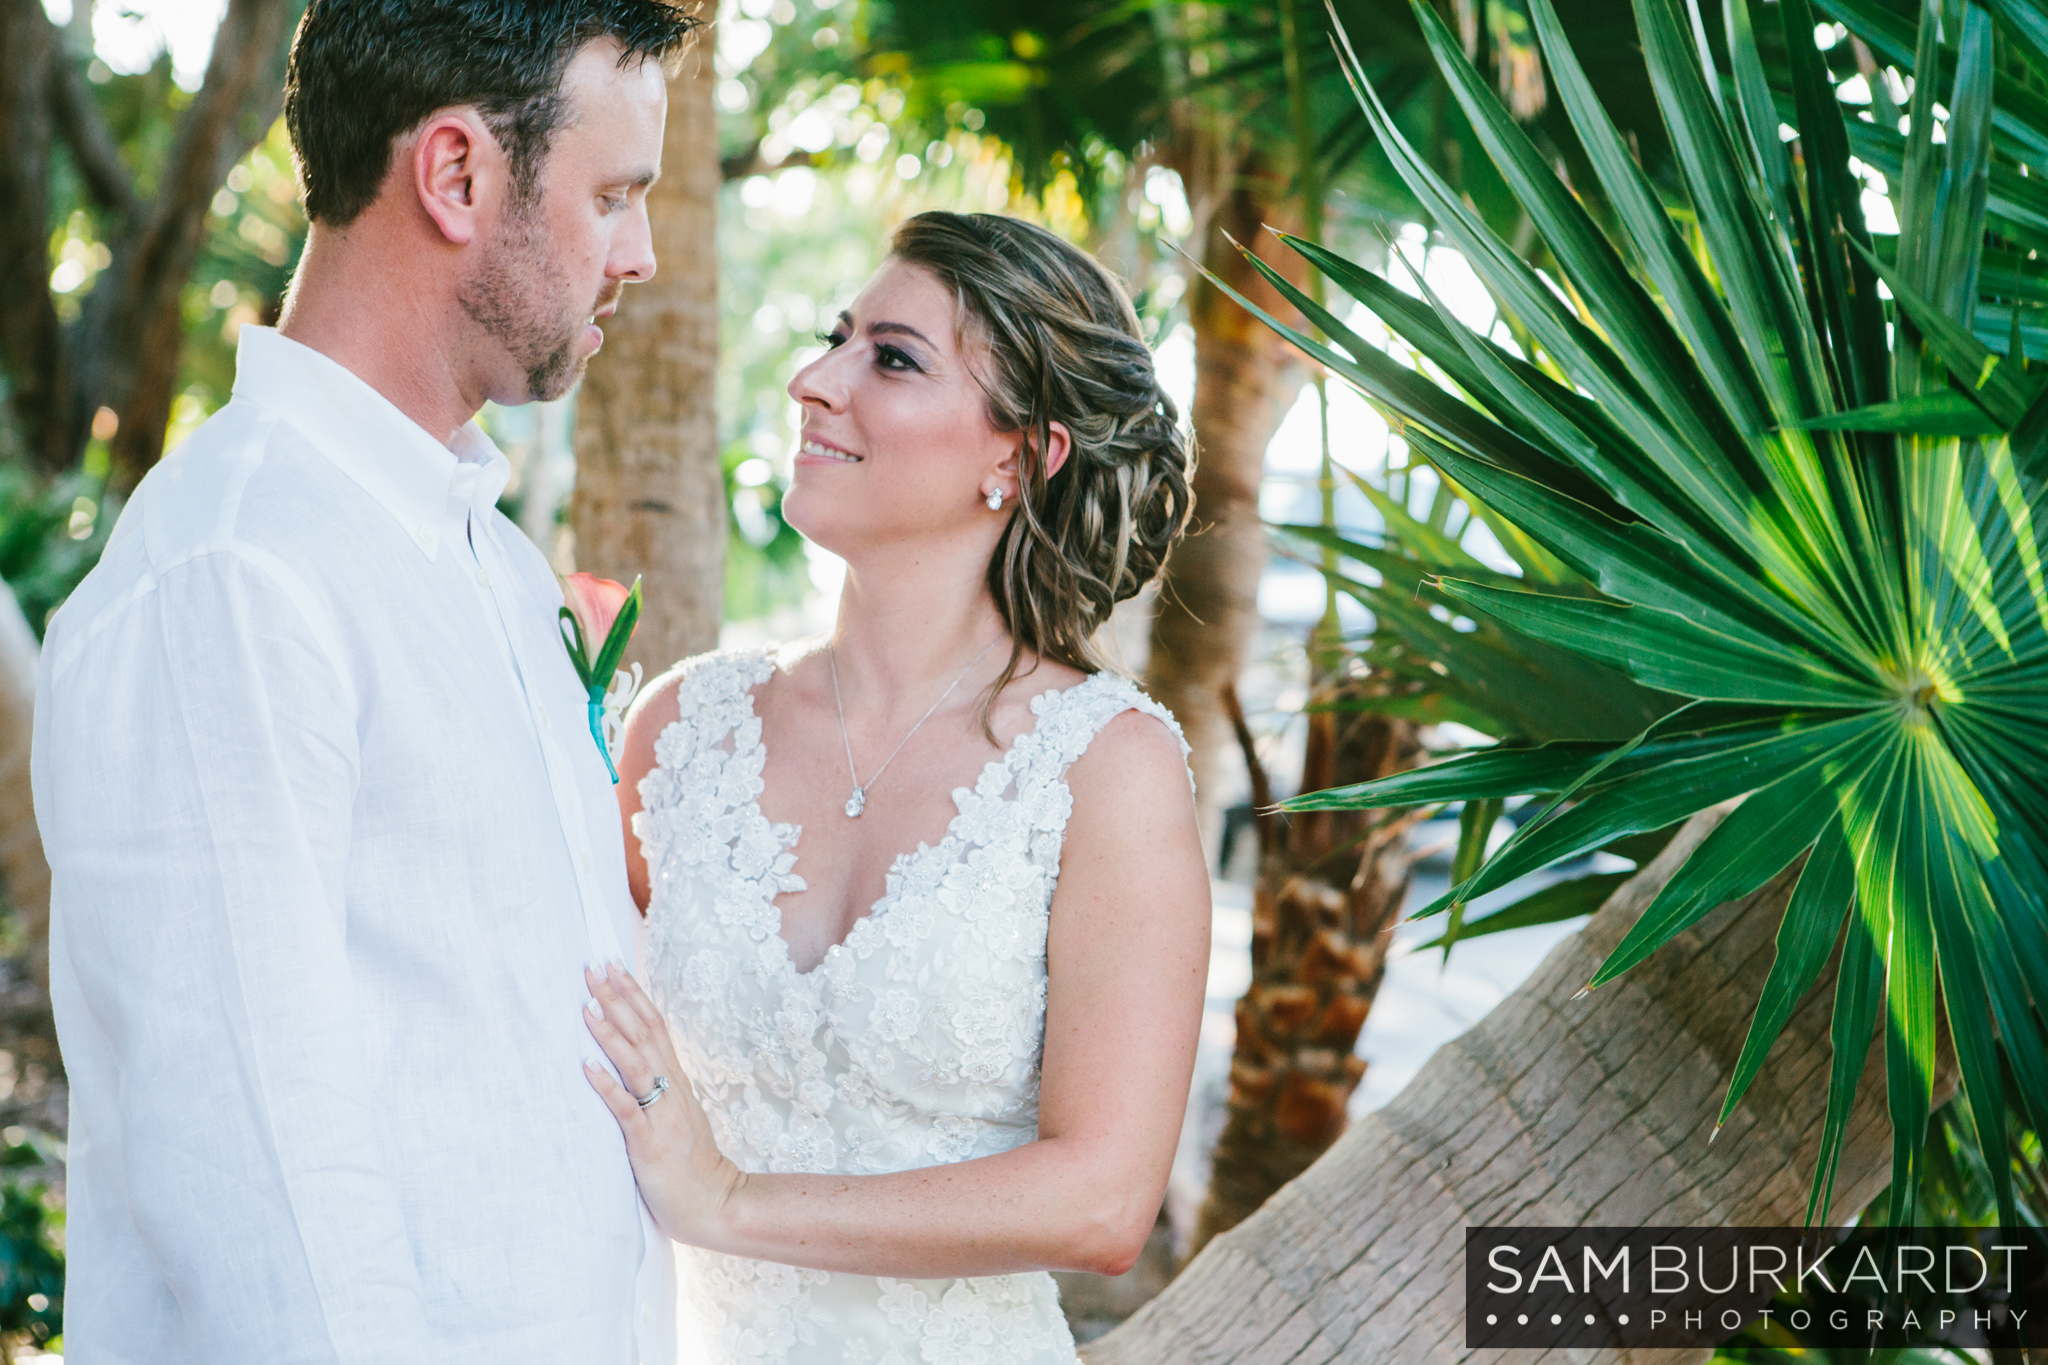 samburkardt_key_west_wedding_marathon_florida_summer_beach_ocean_front_0049.jpg